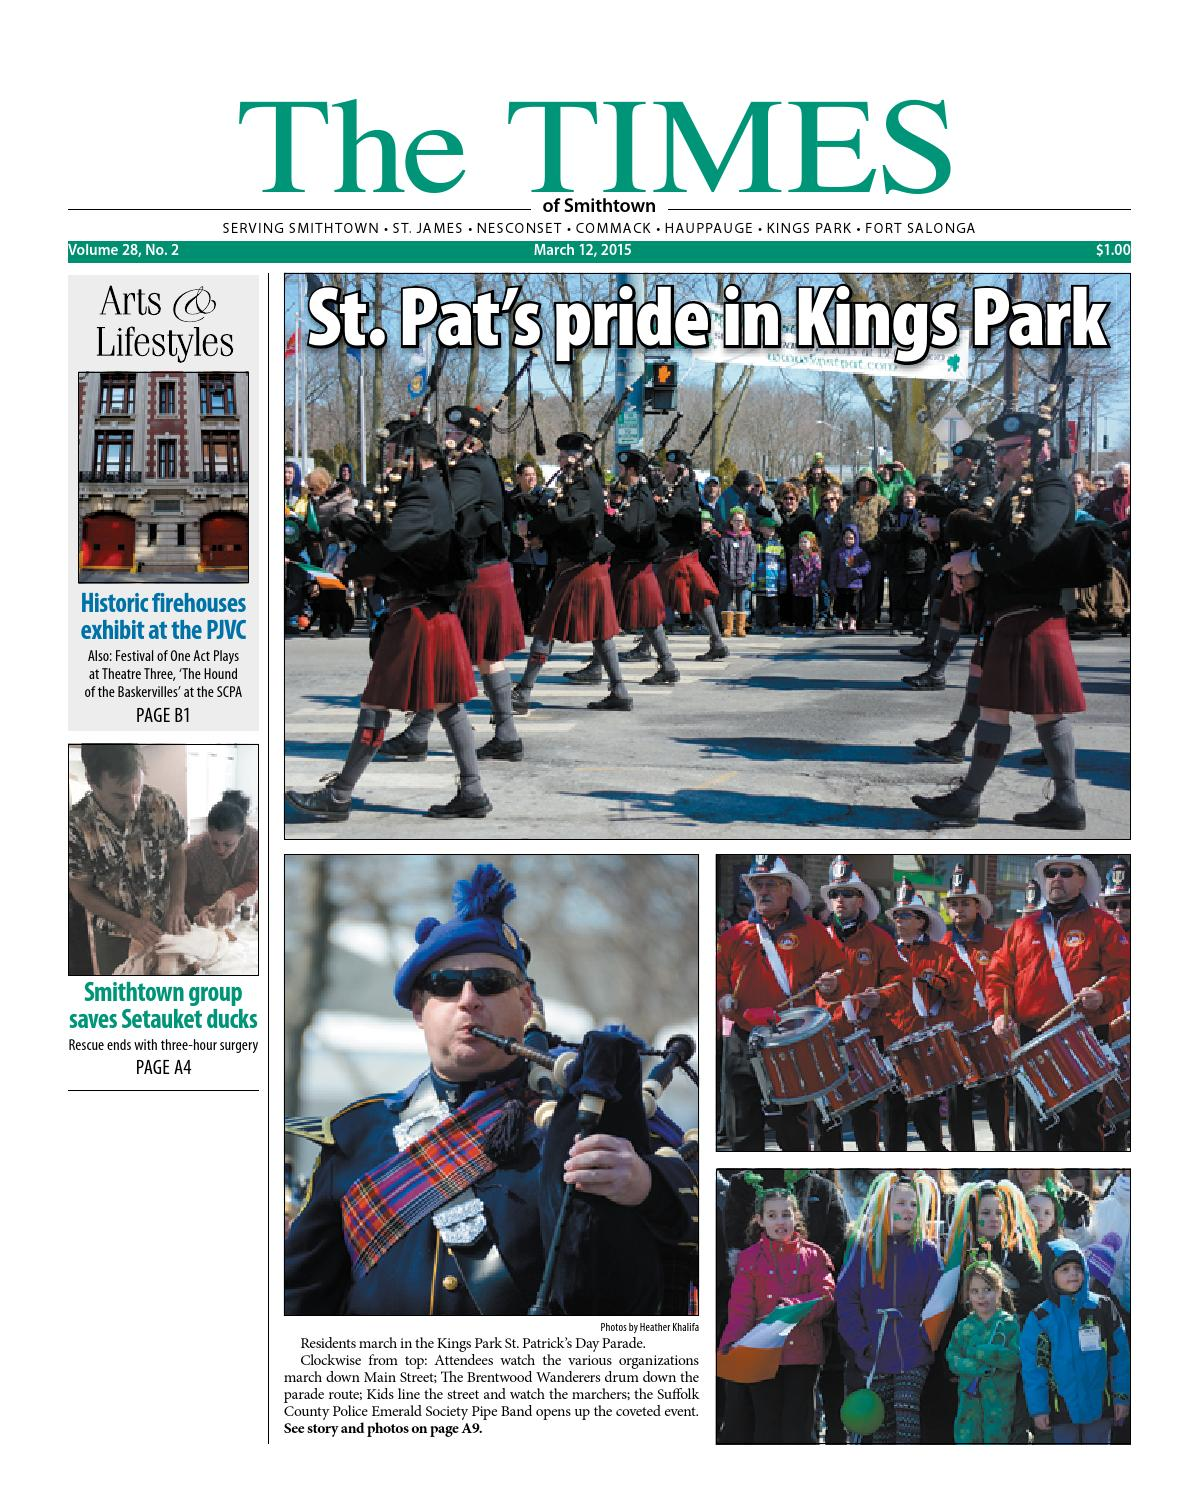 The times of smithtown march 12 2015 by tbr news media issuu fandeluxe Image collections